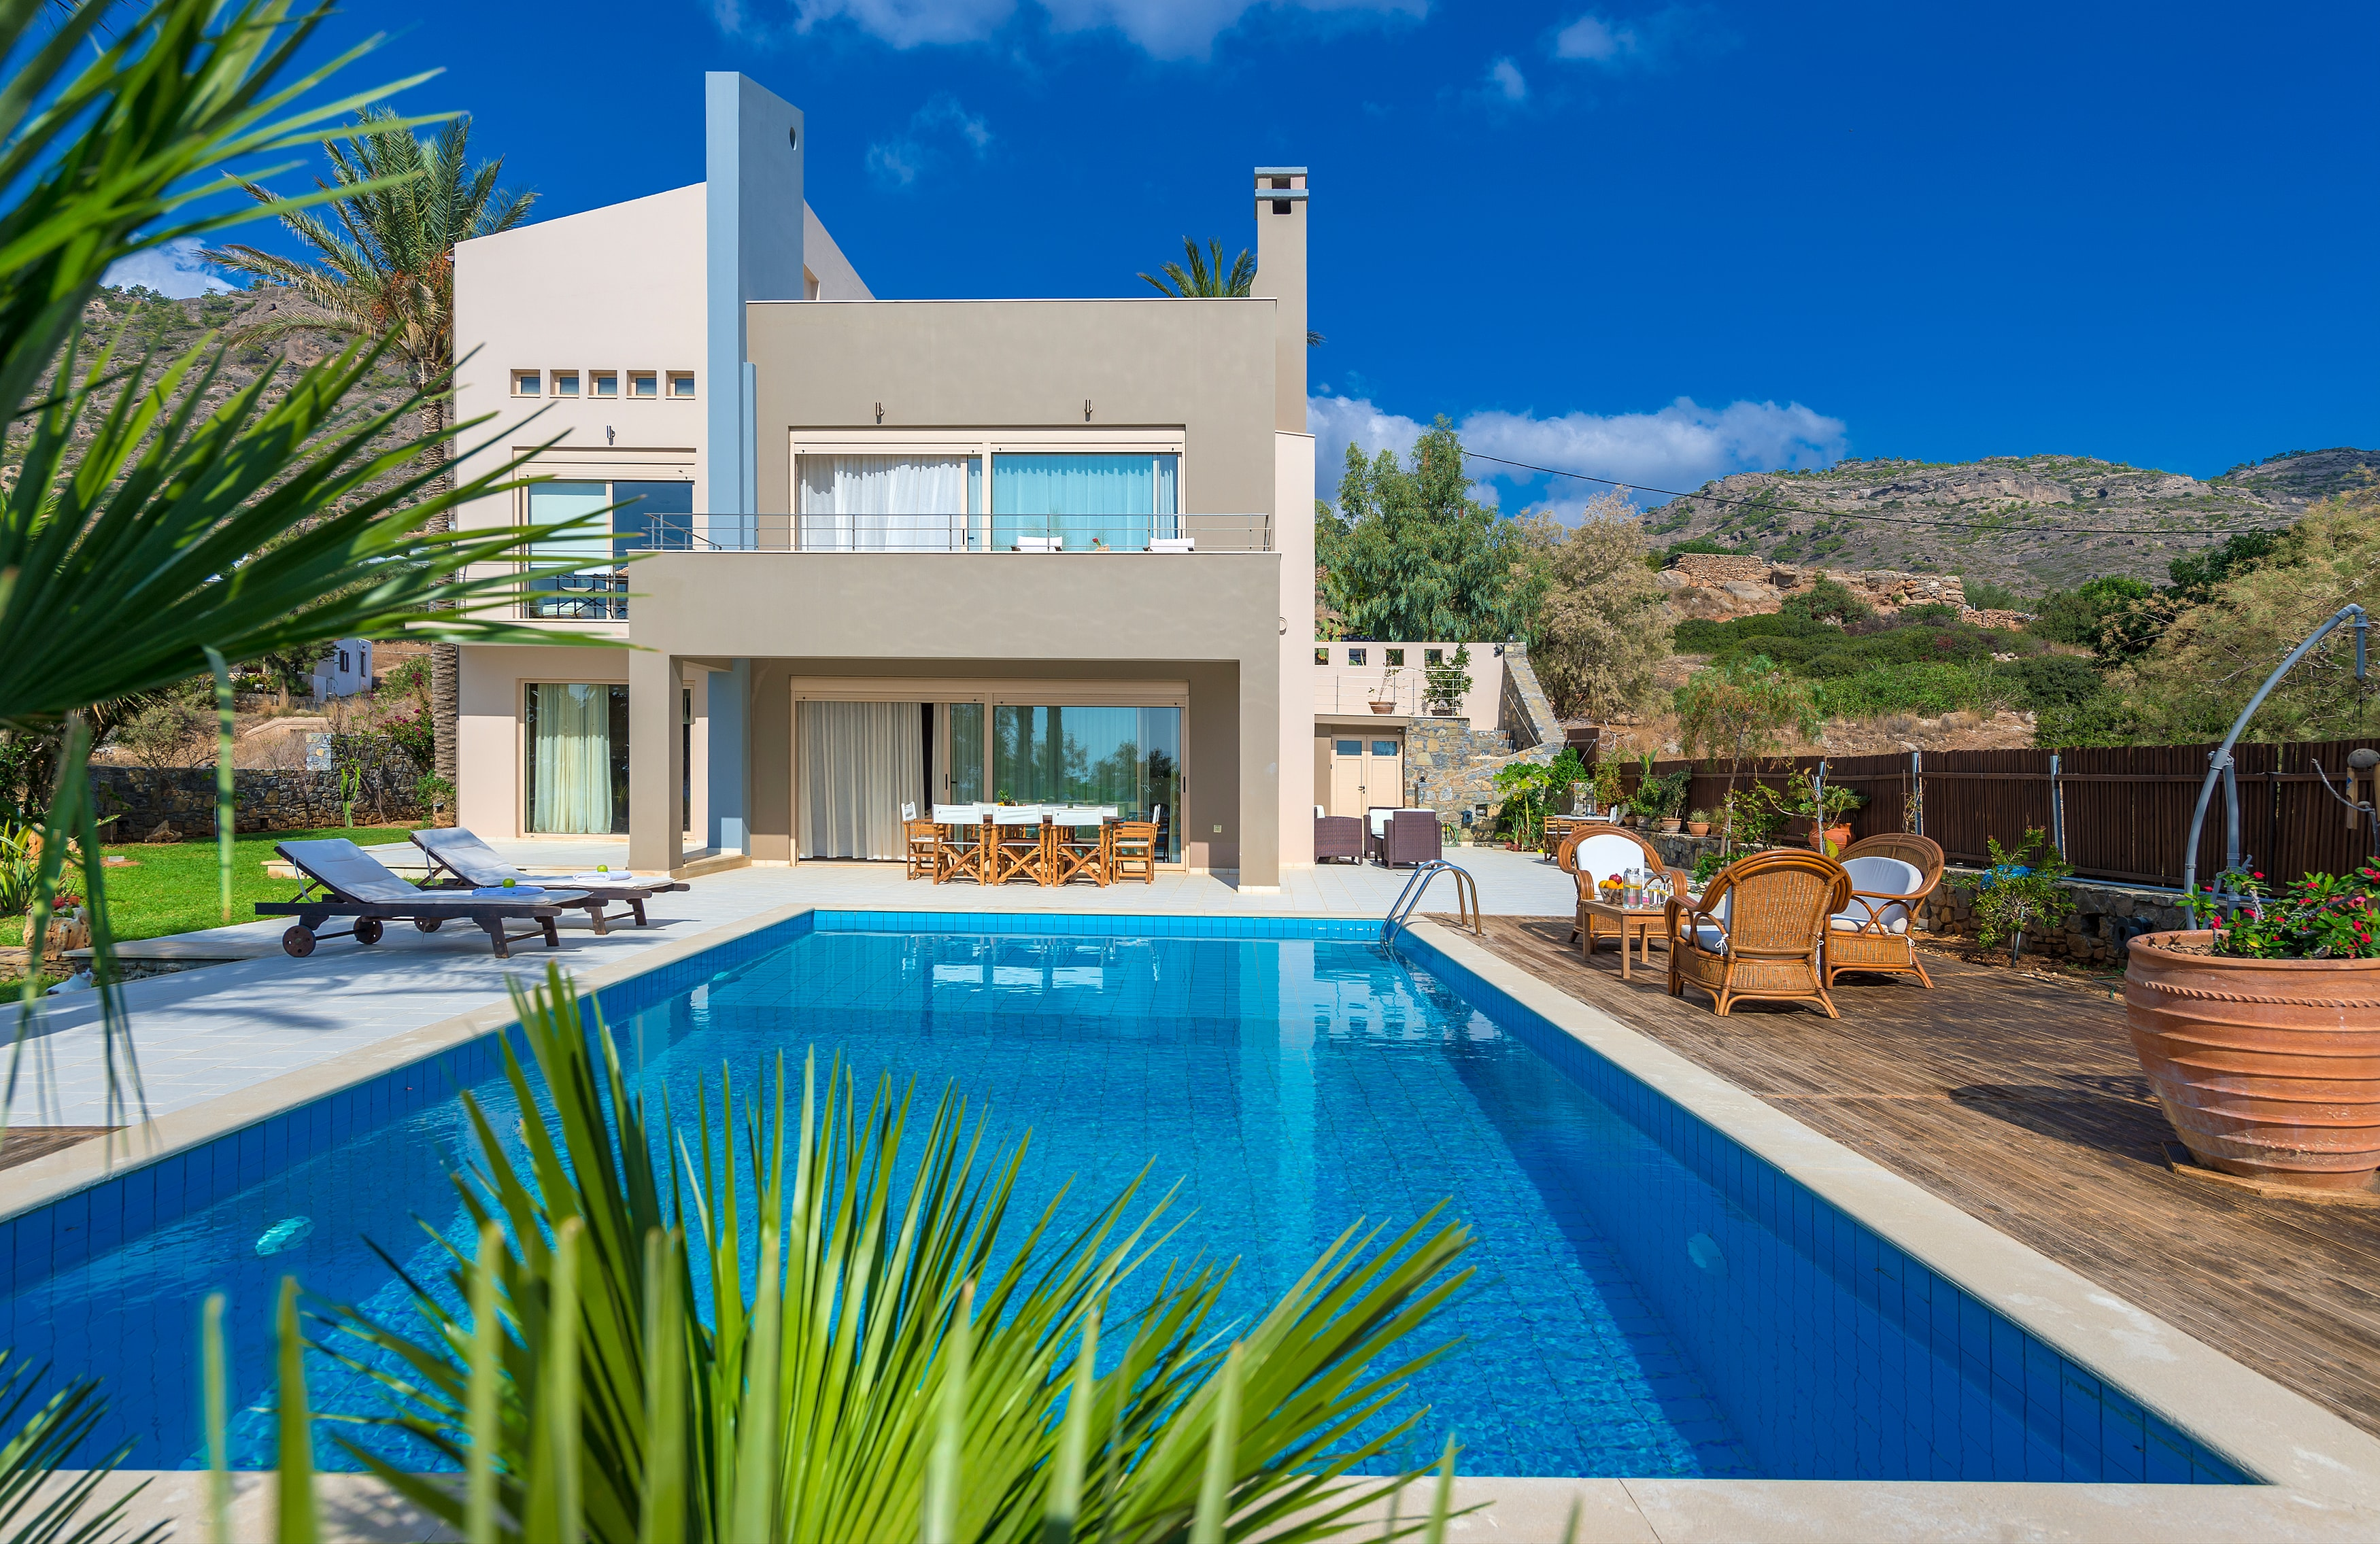 Property Image 1 - Ideal Holiday Villa with Enormous Garden and Own Pool